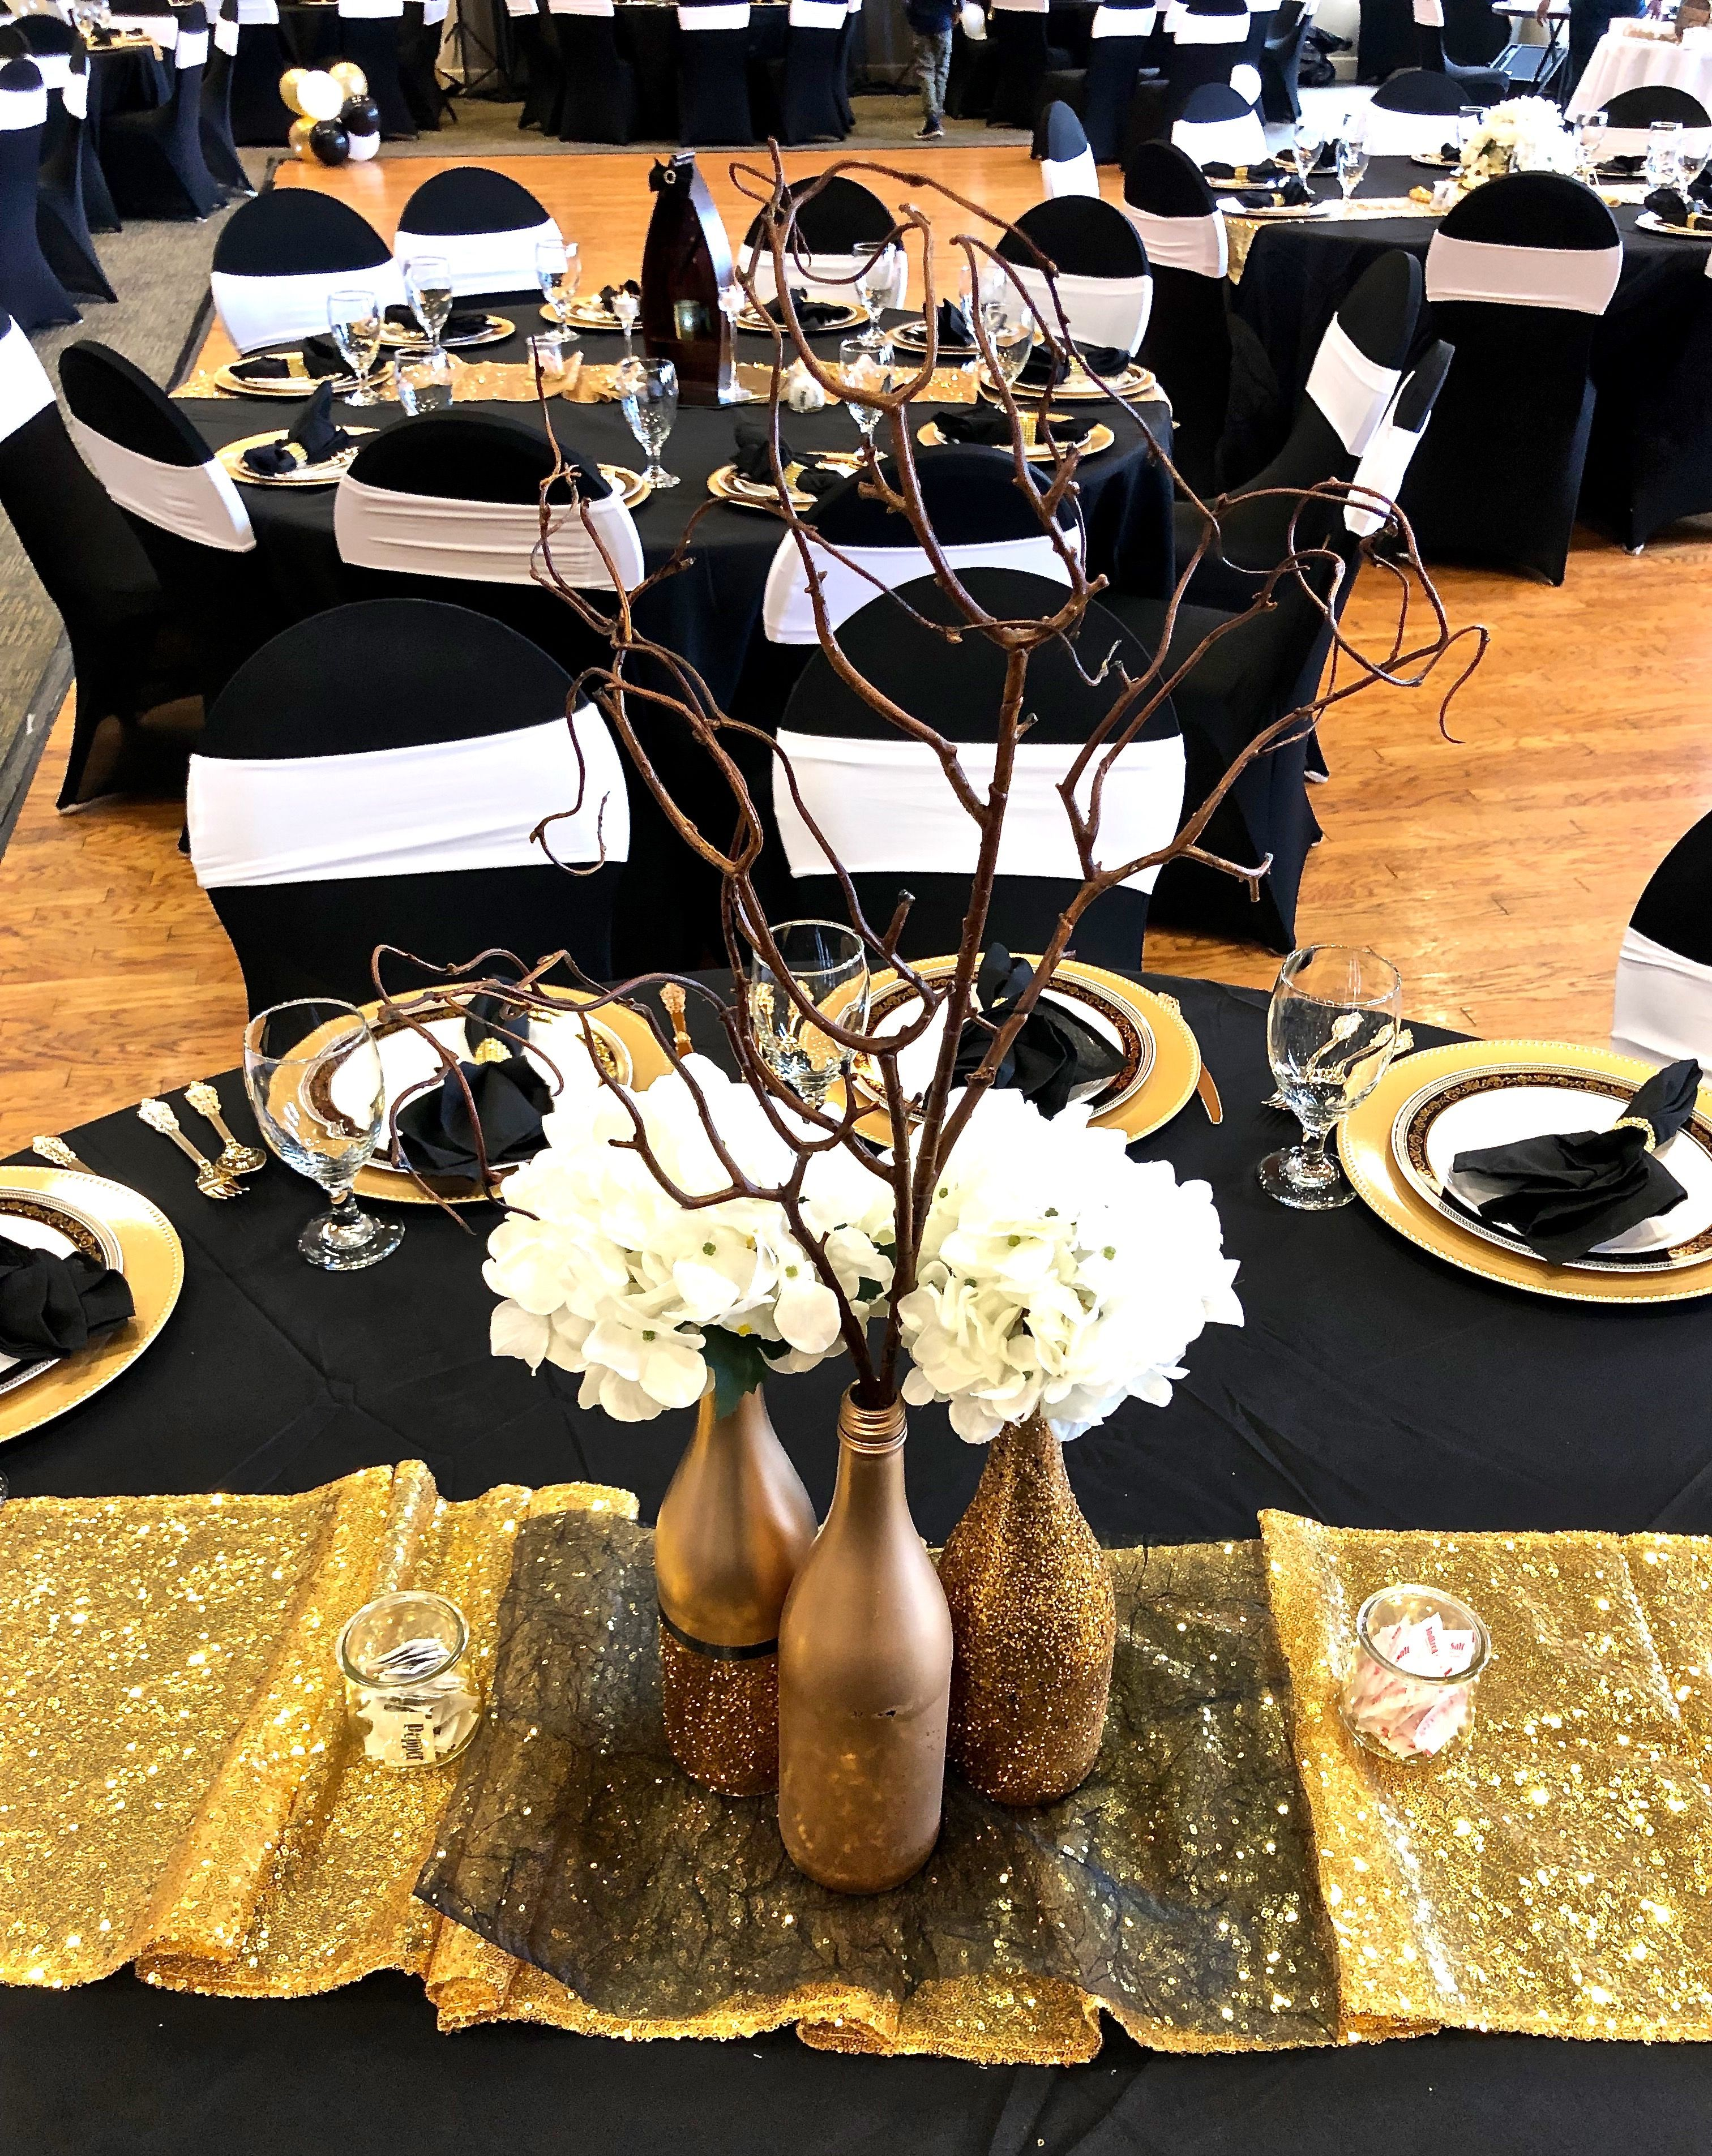 Black White And Gold Party With Glitter Gold Bottle Centerpieces Black And Gold Party Decorations Gold Theme Party Black And Gold Centerpieces